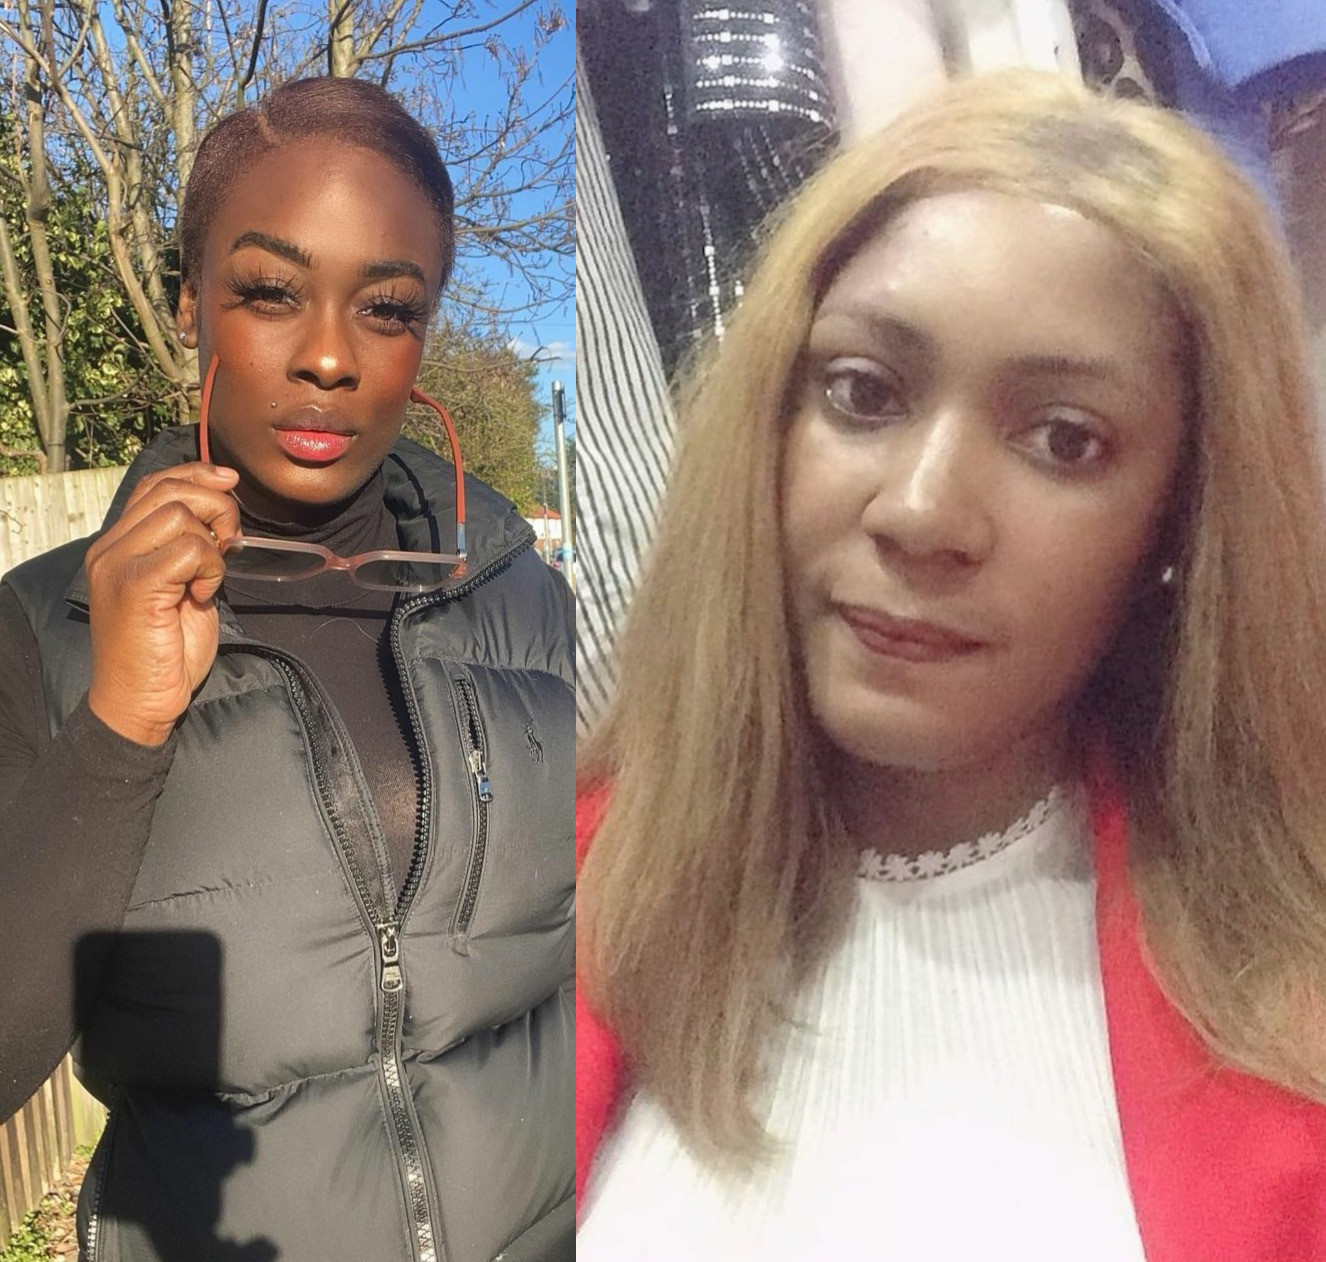 BBNaija's Uriel blasts follower who called her Ugly for defending Davido's partner, Chioma